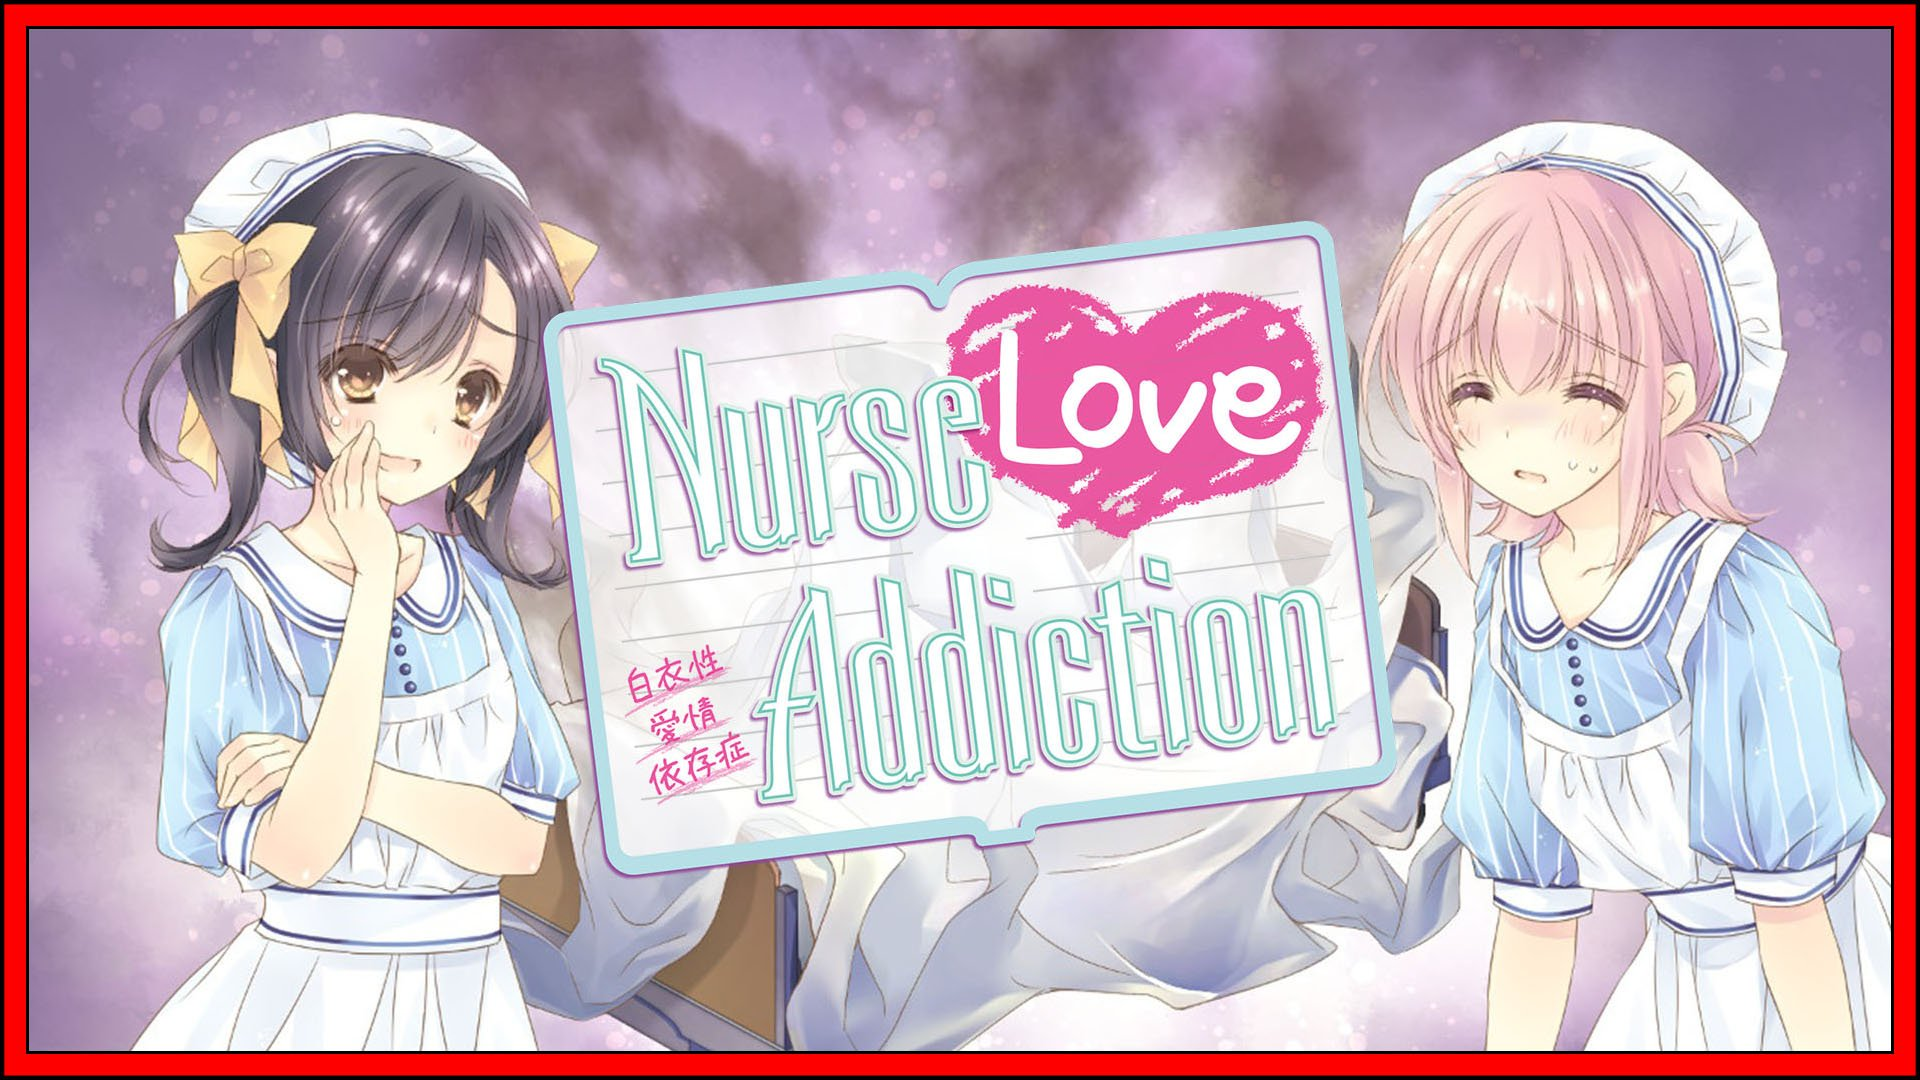 Nurse Love Addiction Fi3